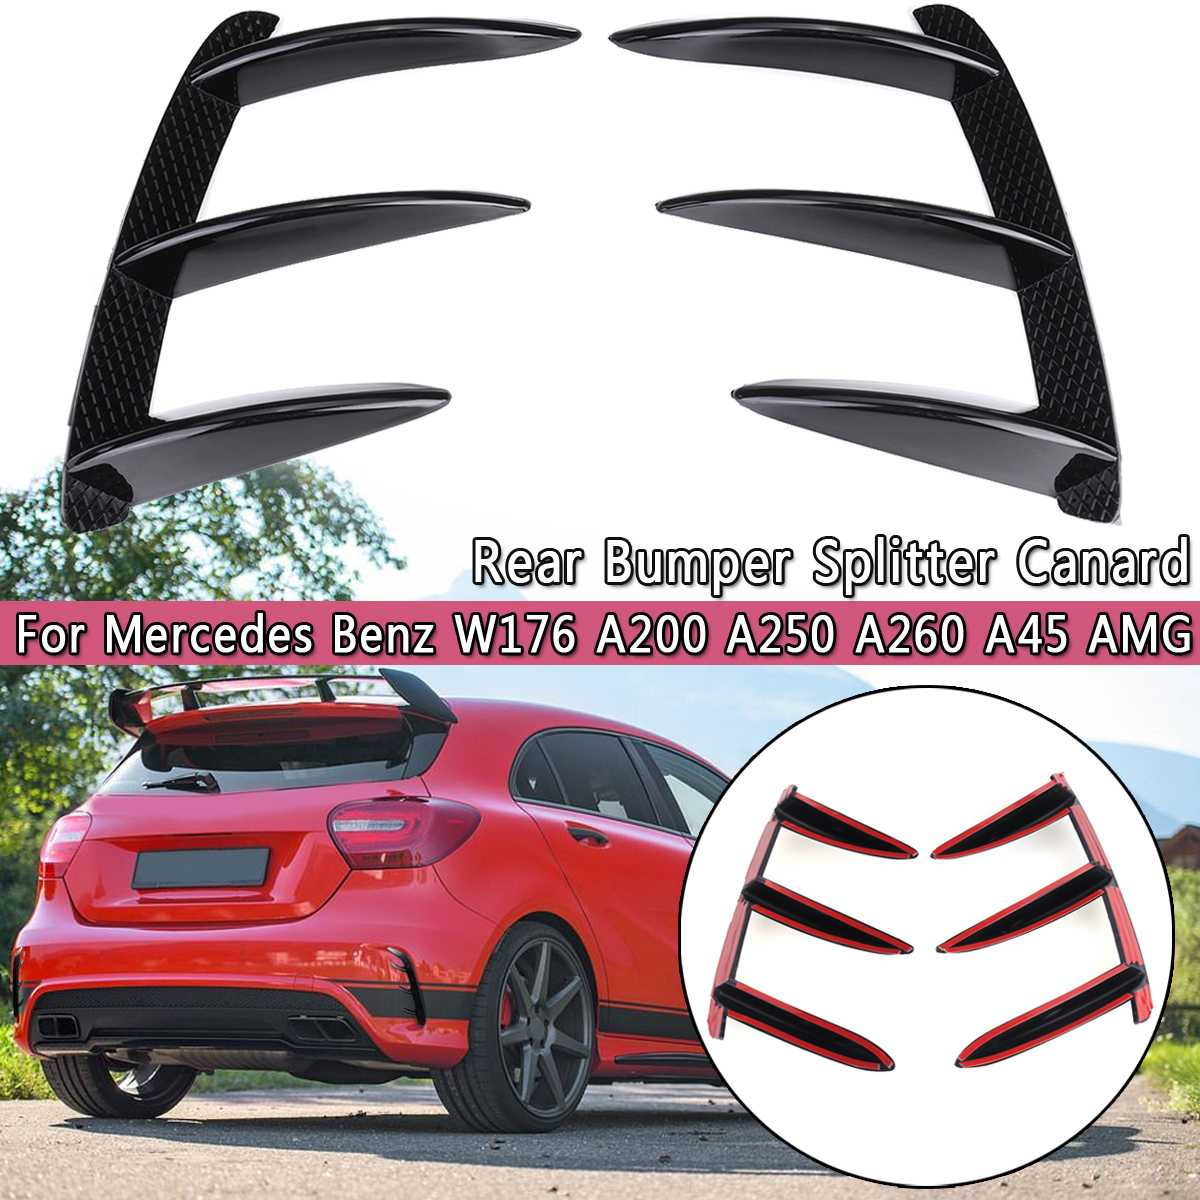 1Pair Car Black ABS Rear Bumper Splitter Spoilers Canard For <font><b>Mercedes</b></font> for <font><b>Benz</b></font> <font><b>W176</b></font> <font><b>A200</b></font> A250 A260 A45 for AMG image